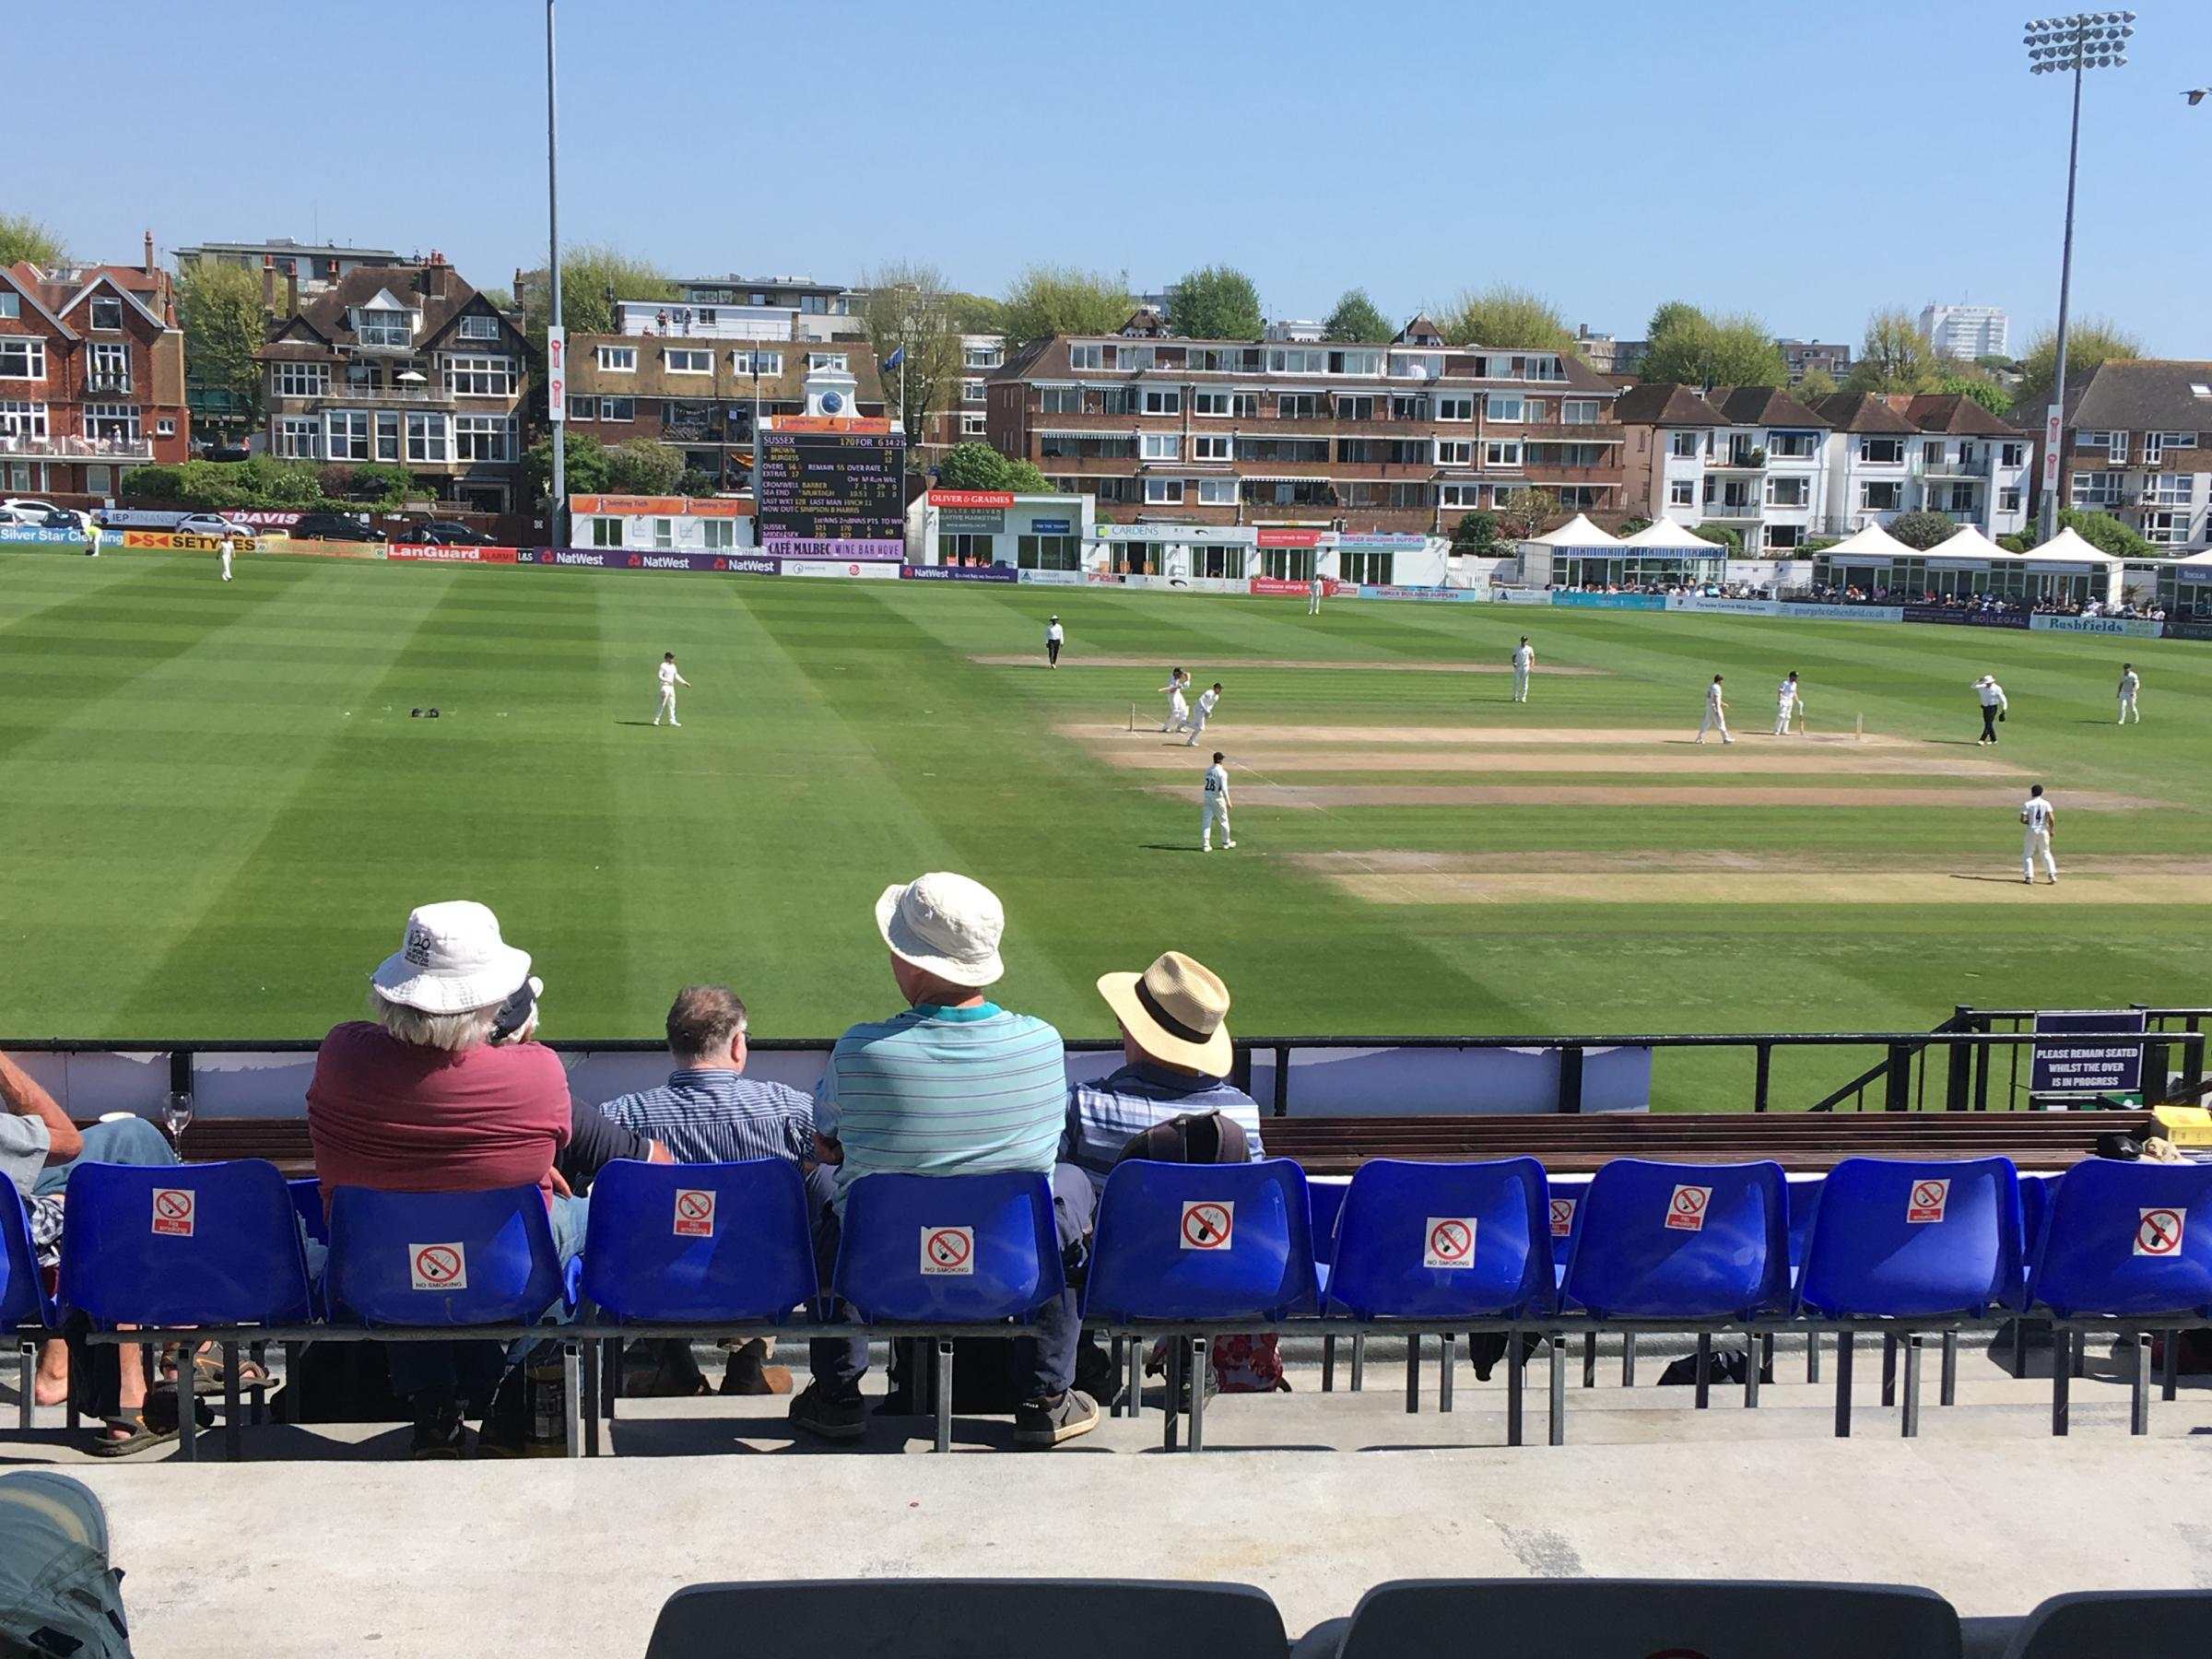 Sussex win - and Brown praises the man who helped him see it through